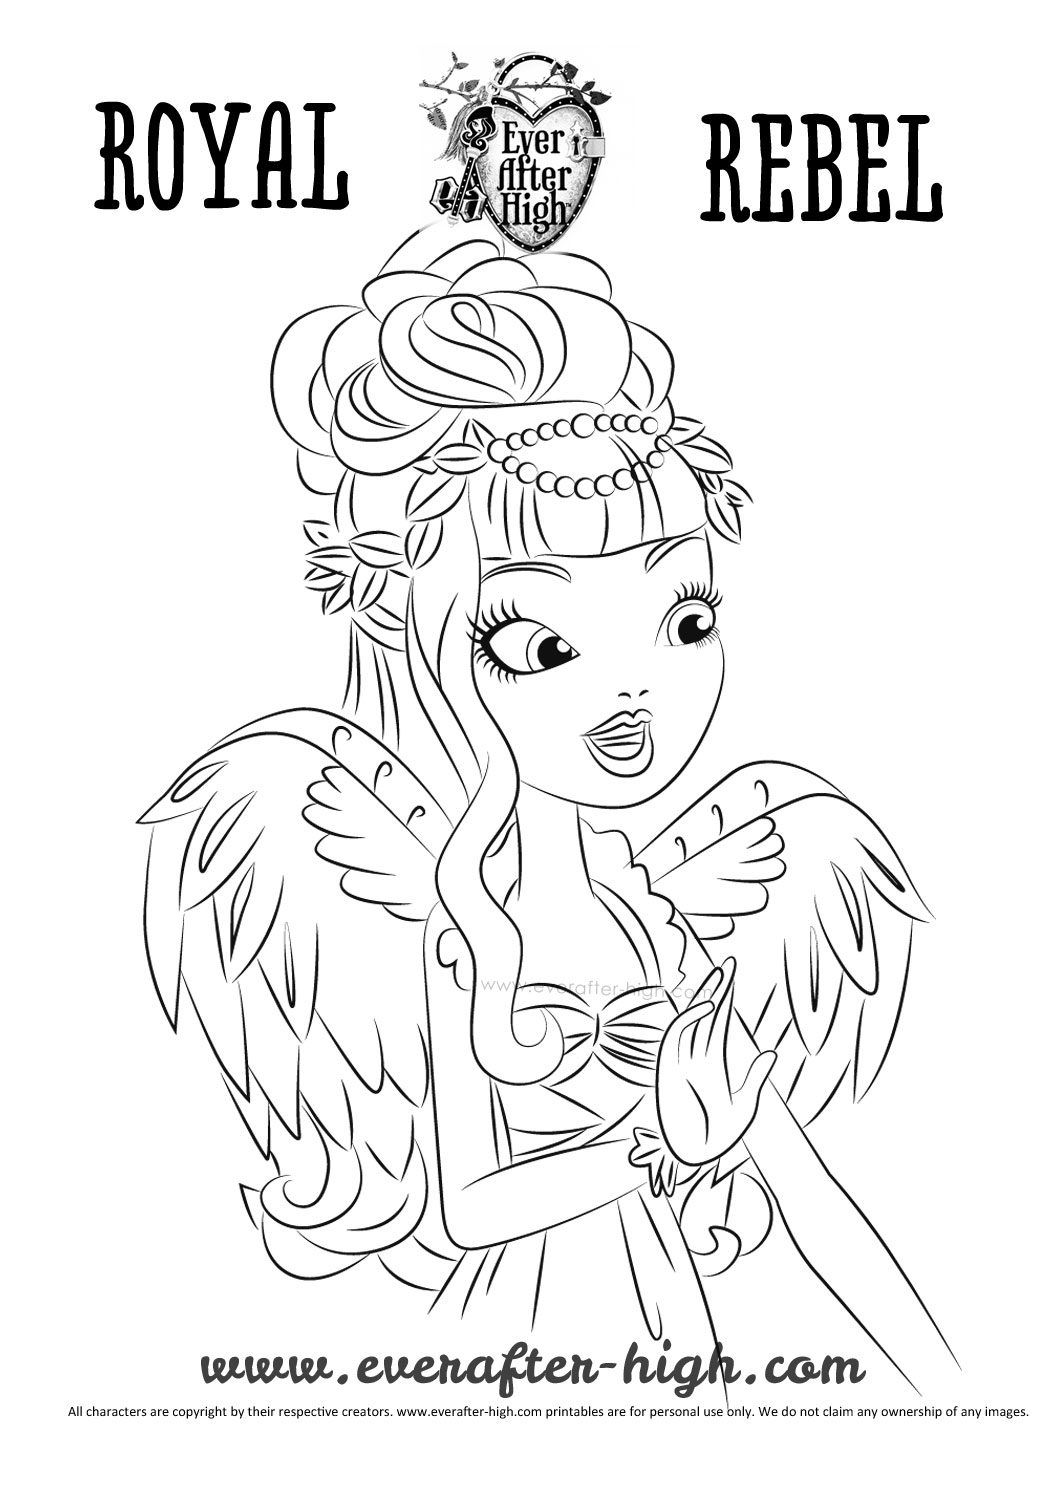 Funny Ever After High Coloring Page For Kids